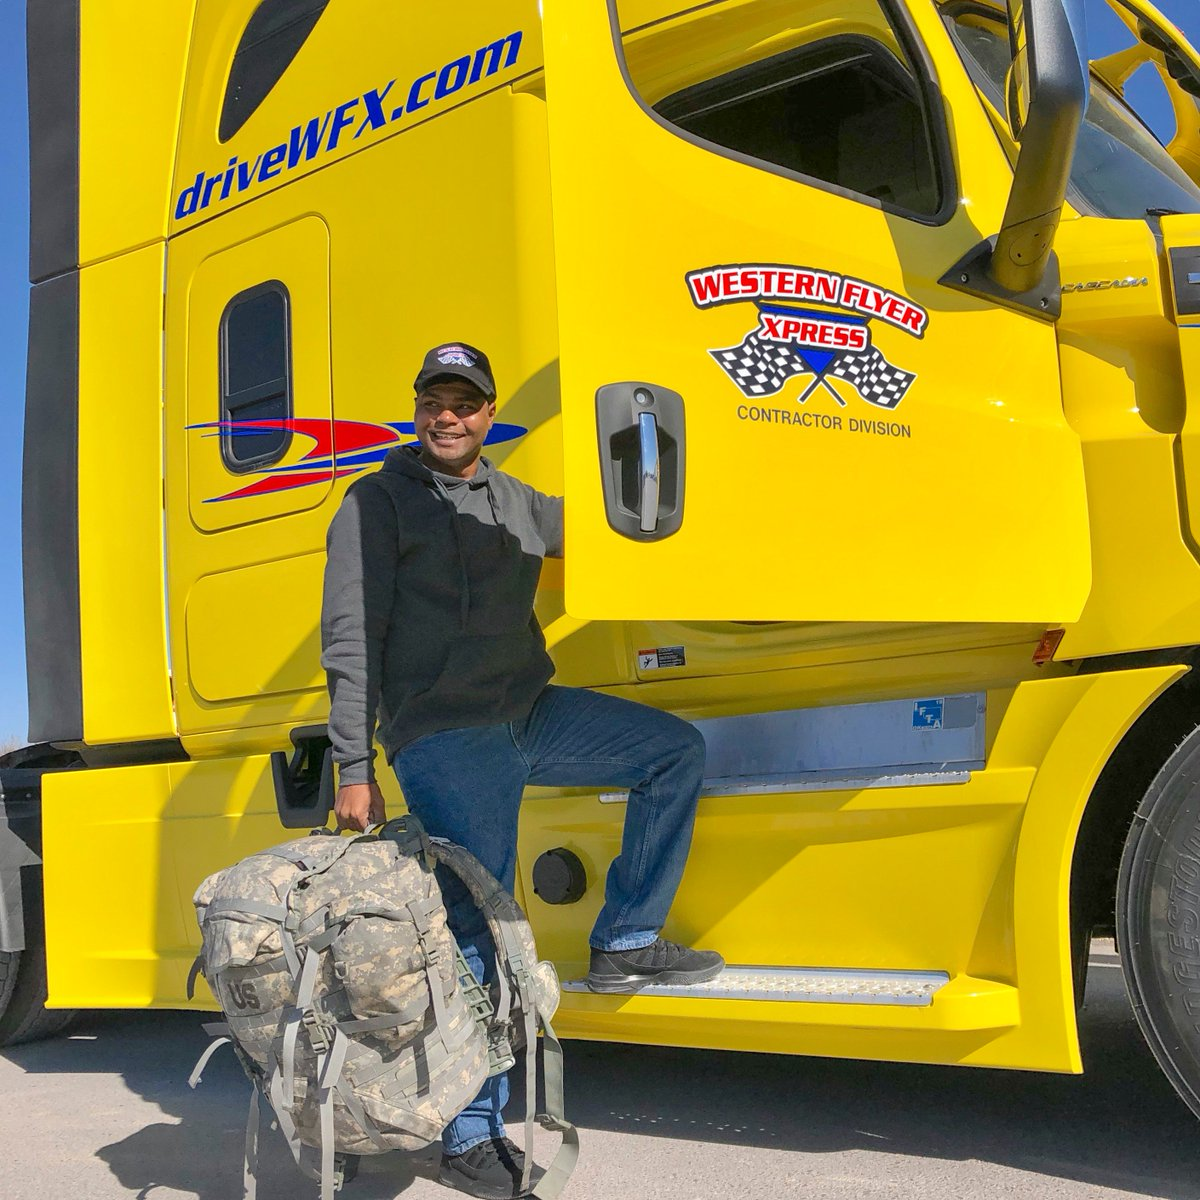 Keon, one of our new contractors, is also in the Army Reserves. Thank you for your service!  #trucks #cdl #cdldriver #drivethedream #miles #bigrig #bigrigdriver #trucking #army #driveyourdream #ontheroad #drivewfx #runthemiles #cdl #cdldriver #cdlcontractor #leasetoown #otrtruck